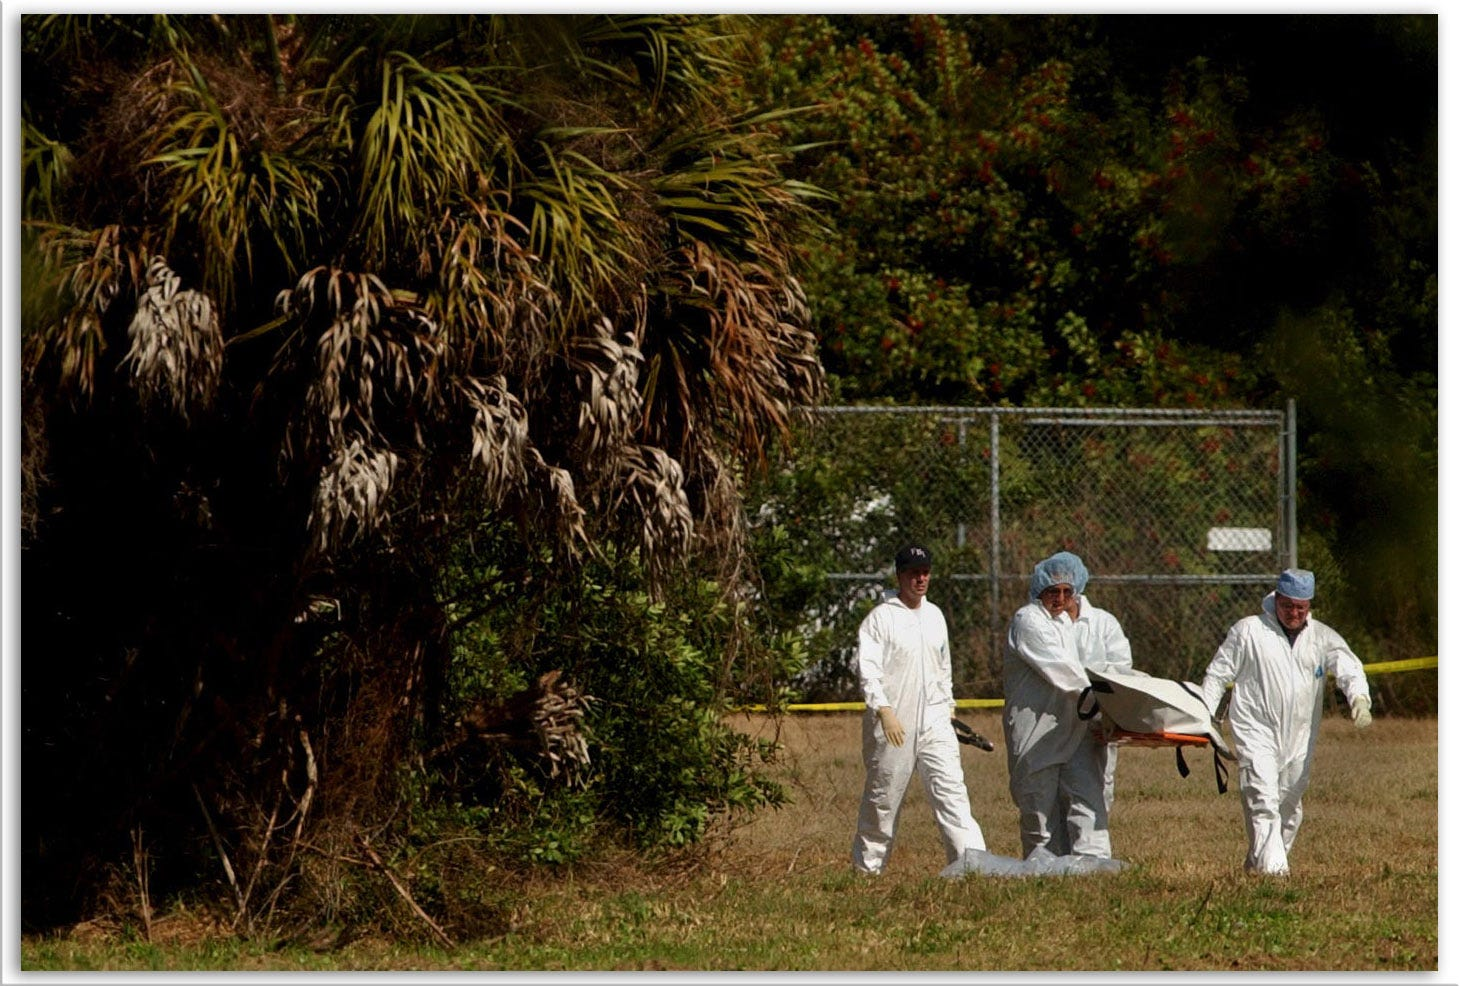 Investigators carry a body from the woods behind Central Church of Christ off Proctor Road in Sarasota, where 11-year-old Carlie Brucia was found dead Feb. 6, 2004.